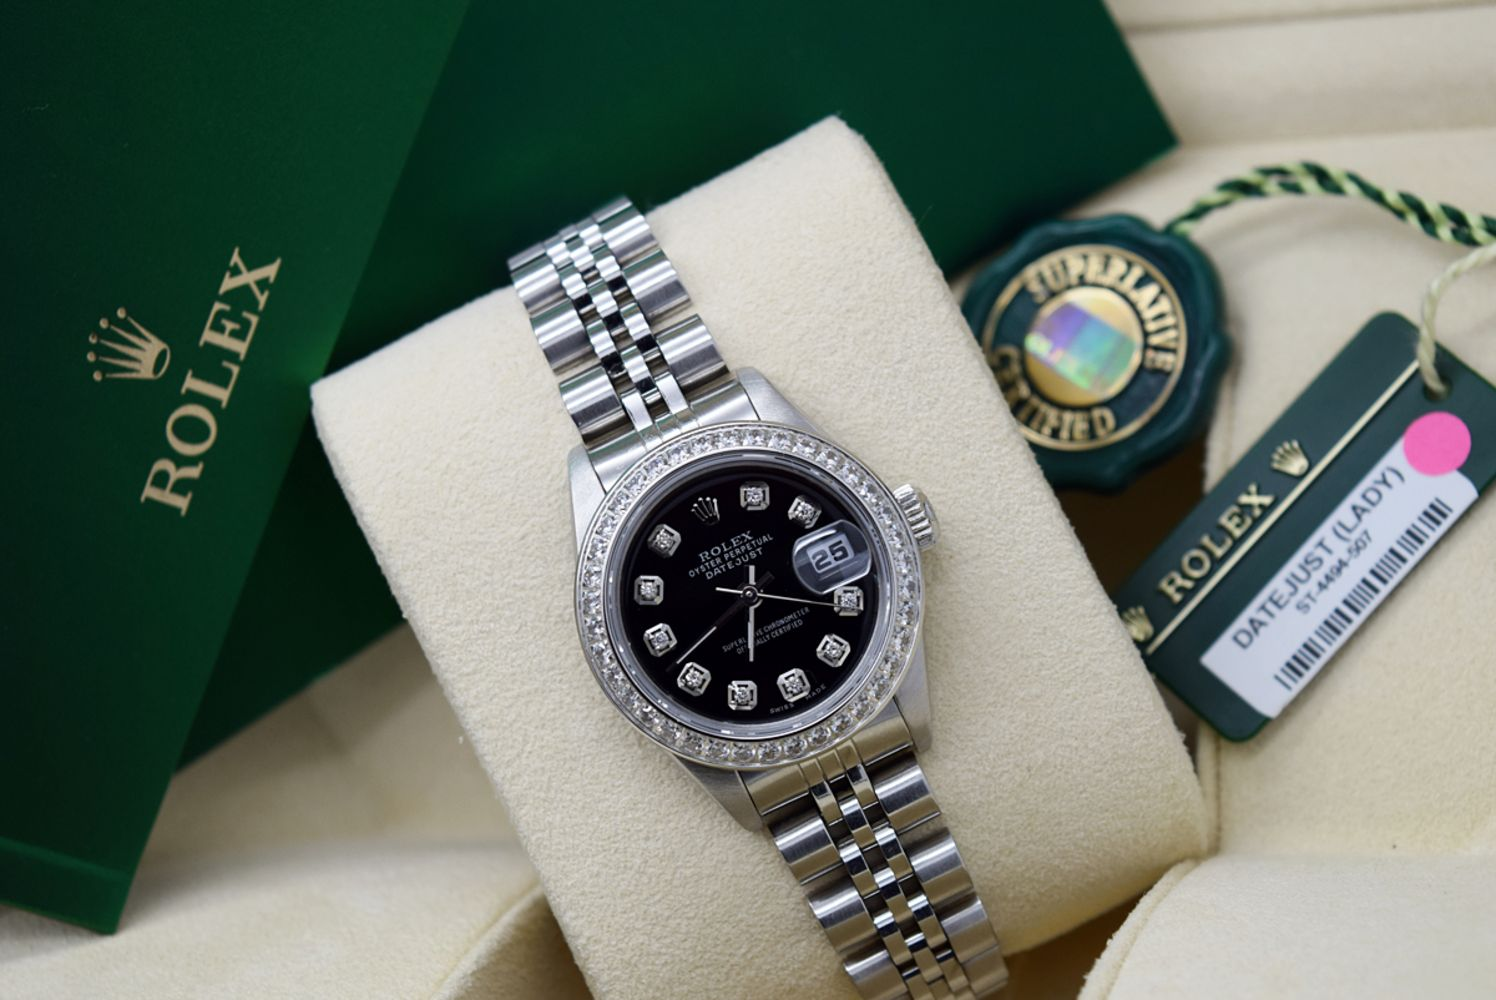 7 DAY AUCTION OF RARE RECORD COLLECTION - FINE JEWELLERY COLLECTION + LUXURY WATCHES INC ROLEX, BREITLING ETC